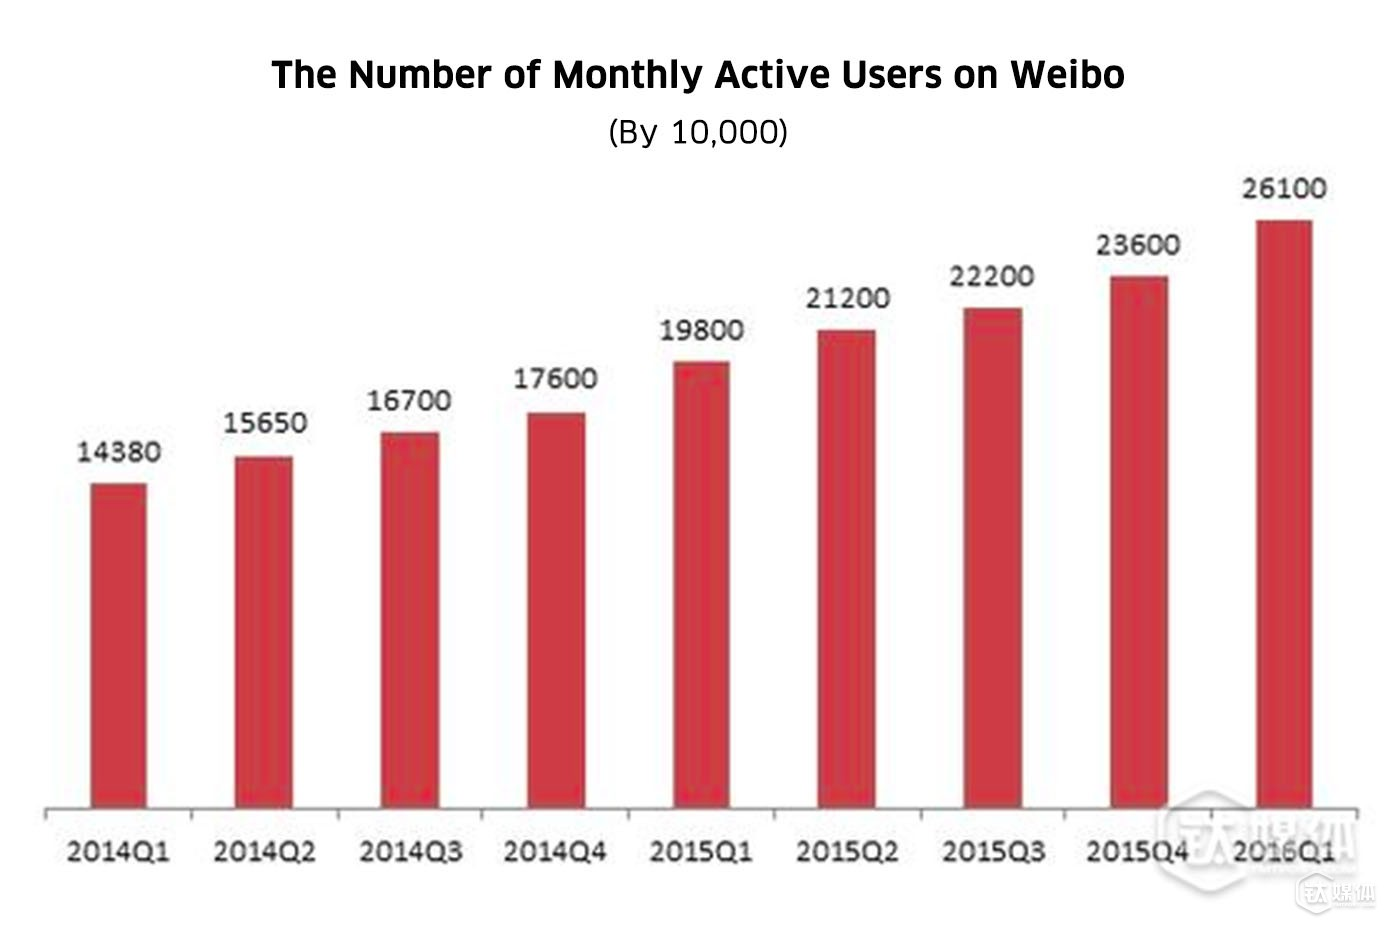 The number of monthly active users on Weibo continued to grow from 2014 to 2016